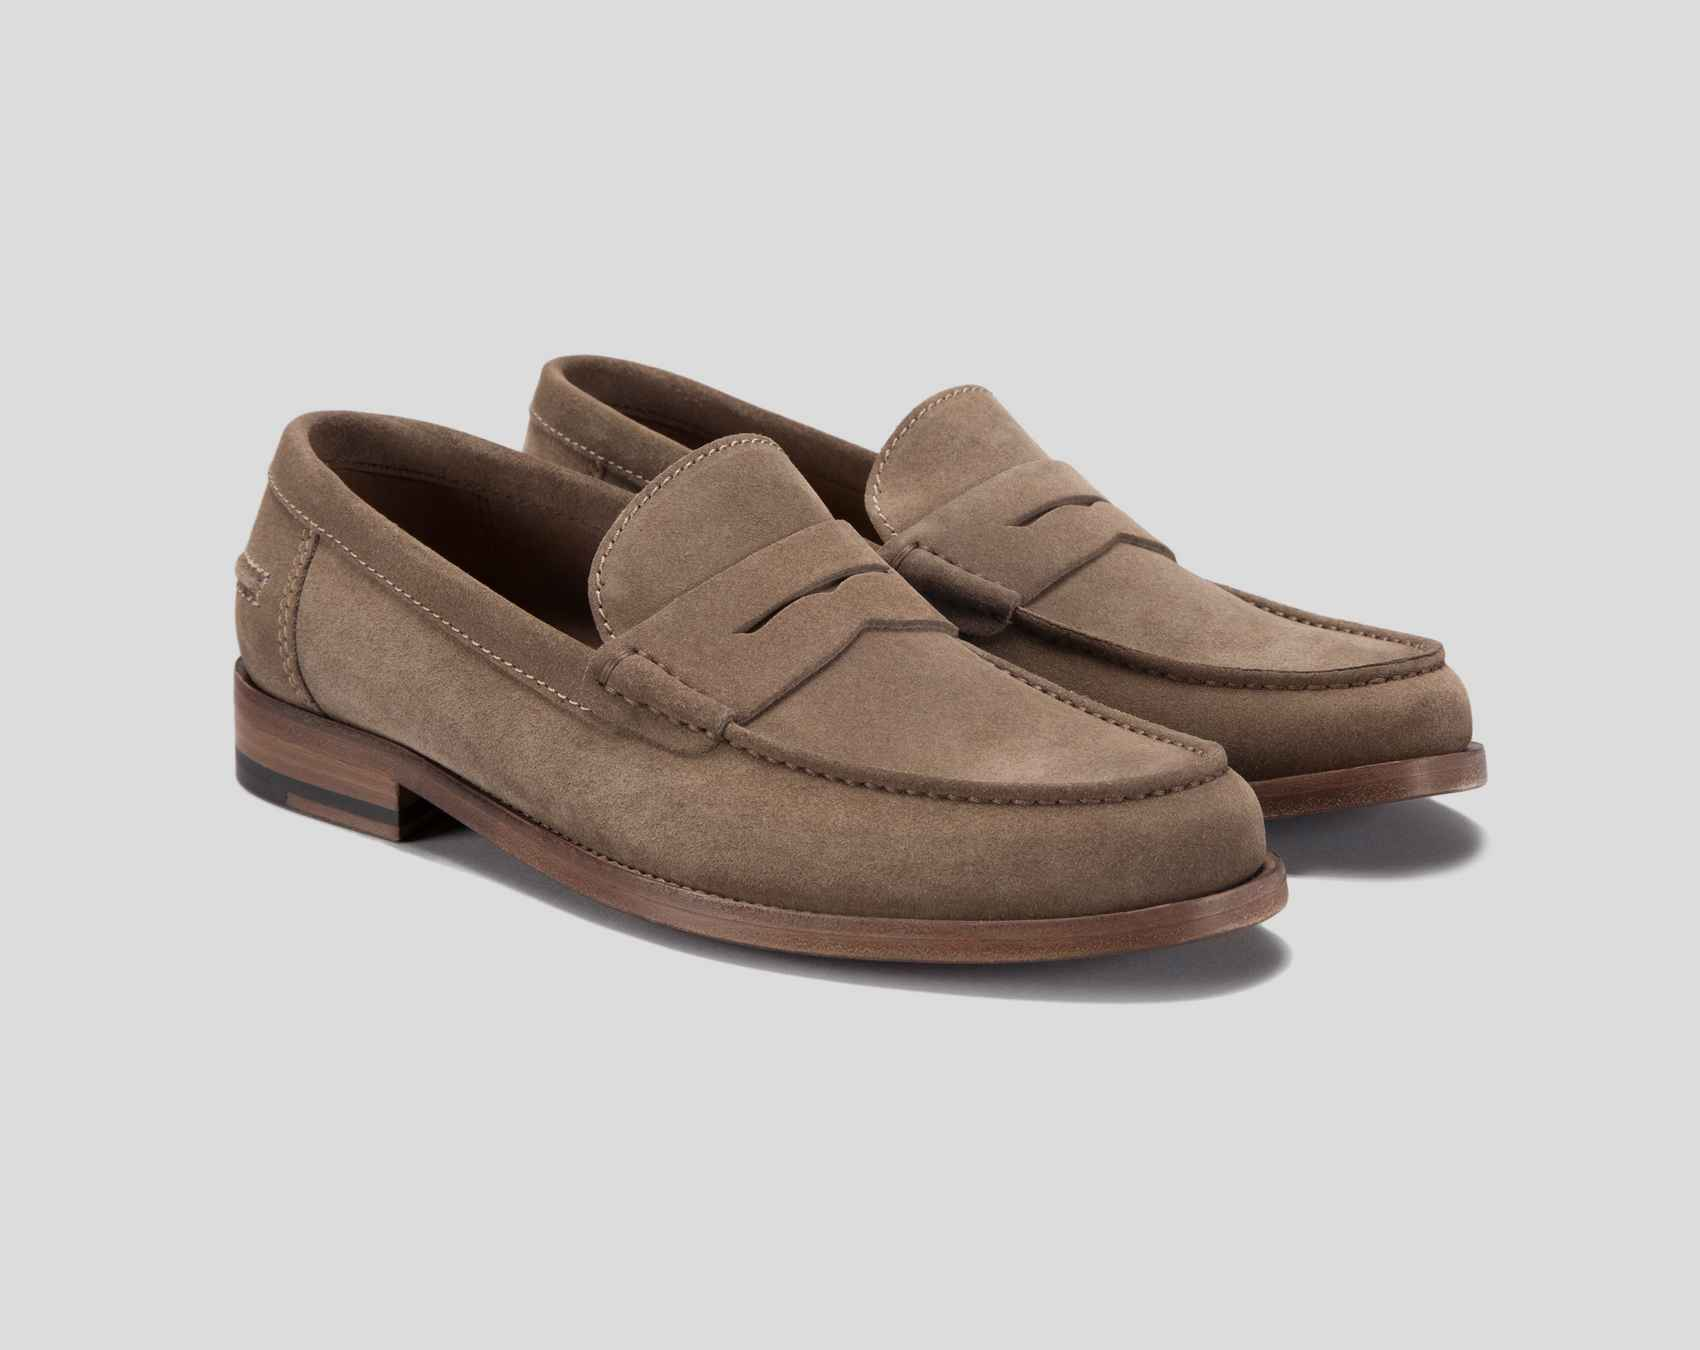 M.Gemi penny loafers